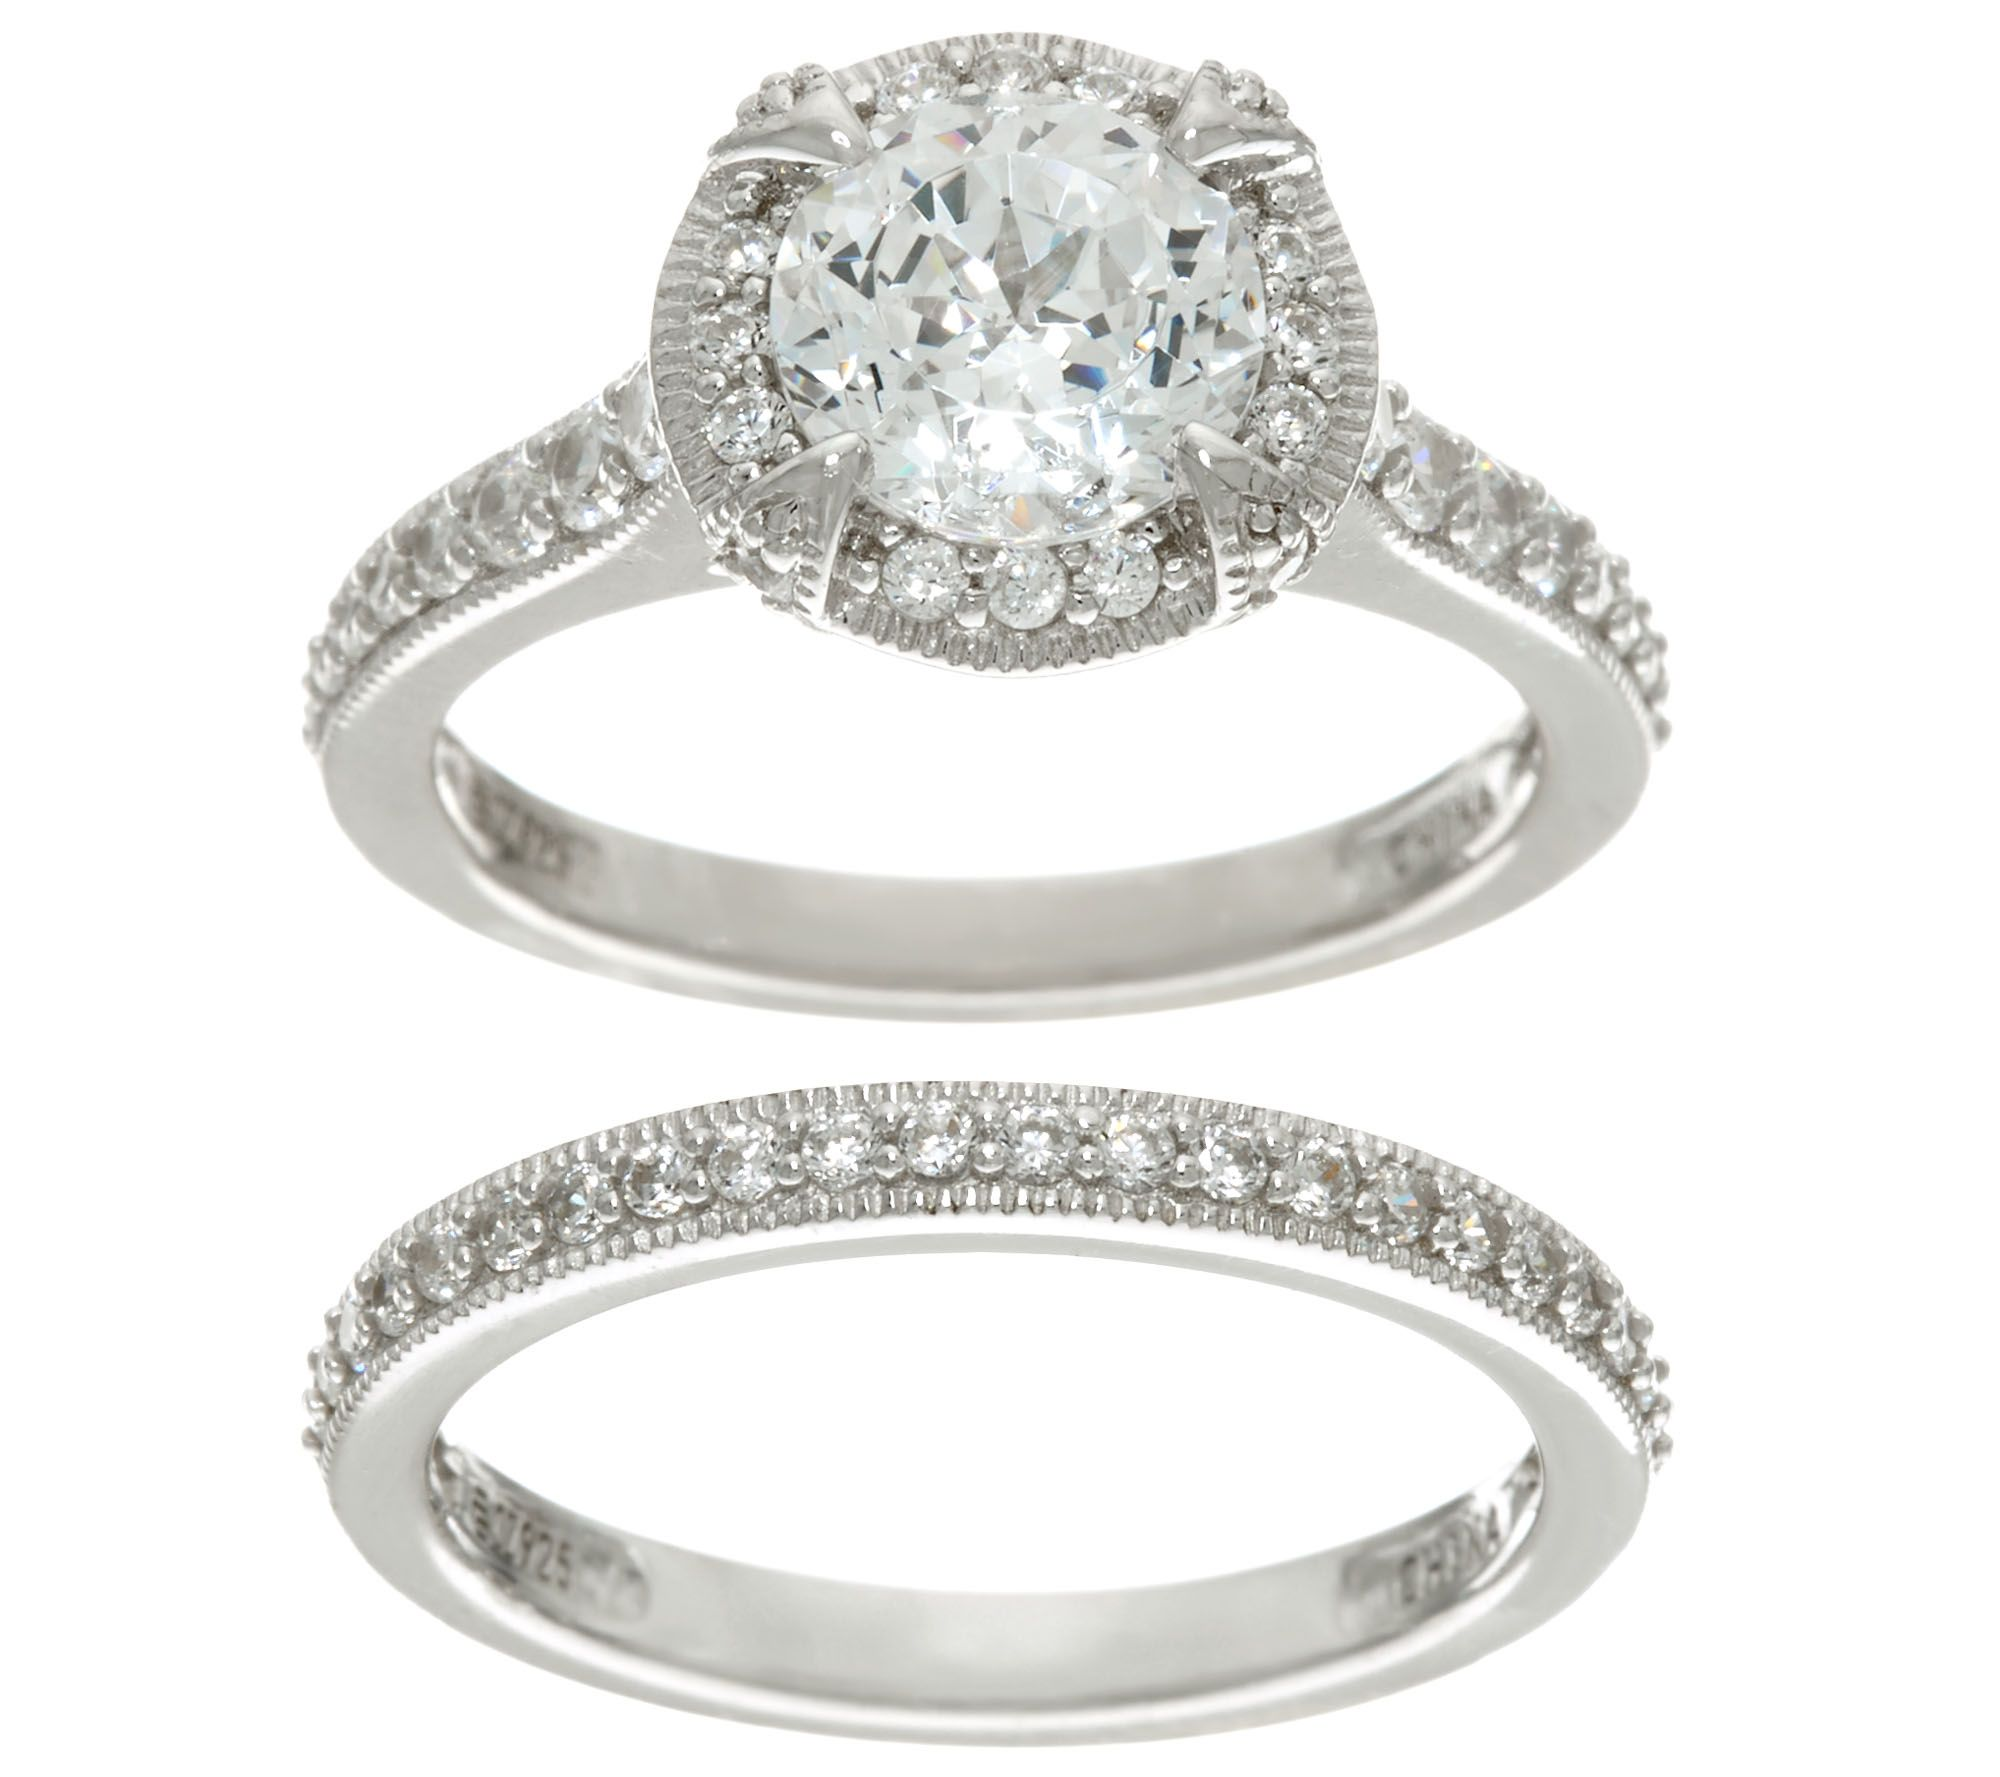 diamonique 100 facet 2 piece bridal ring set sterling page 1 qvccom - Qvc Wedding Rings